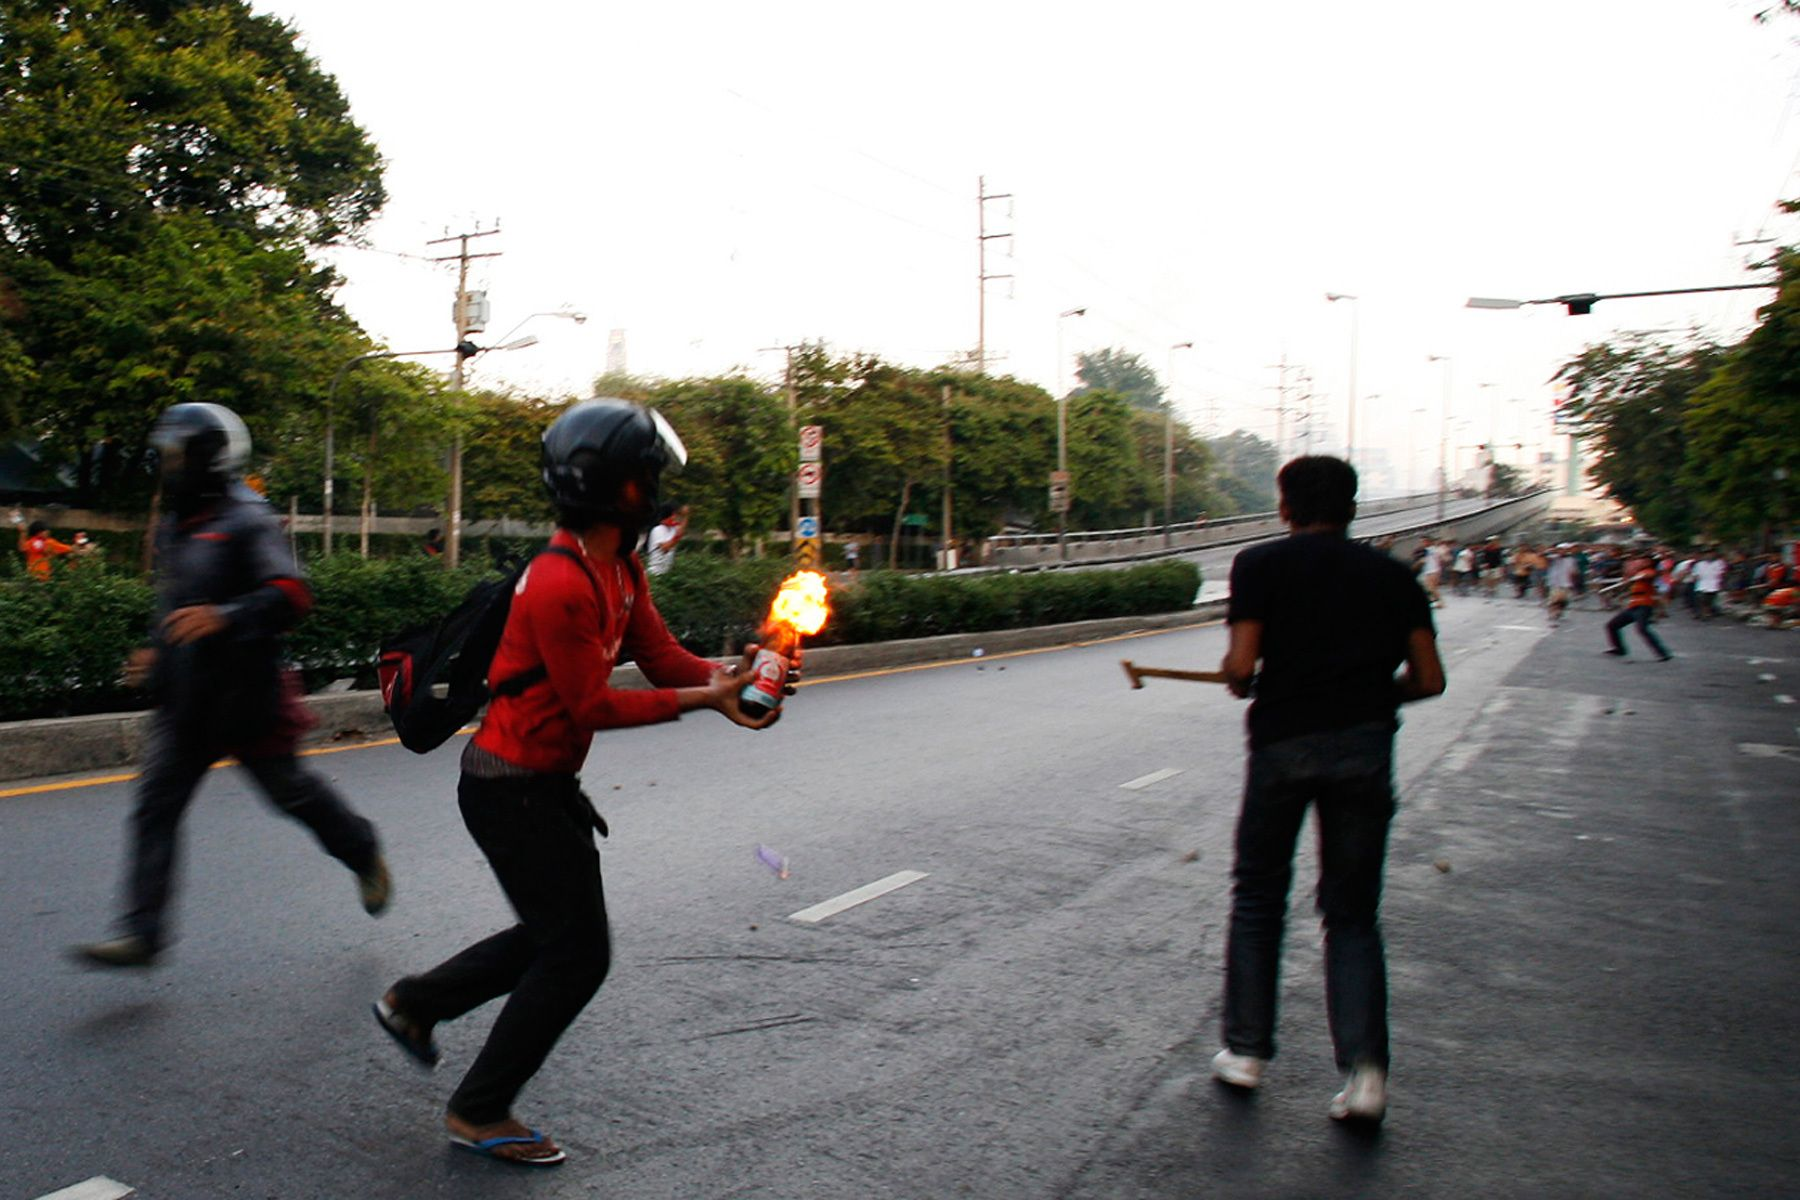 A member of the anti-government United Front for Democracy against Dictatorship (UDD) throw a petrol bomb during a street fight against residents.